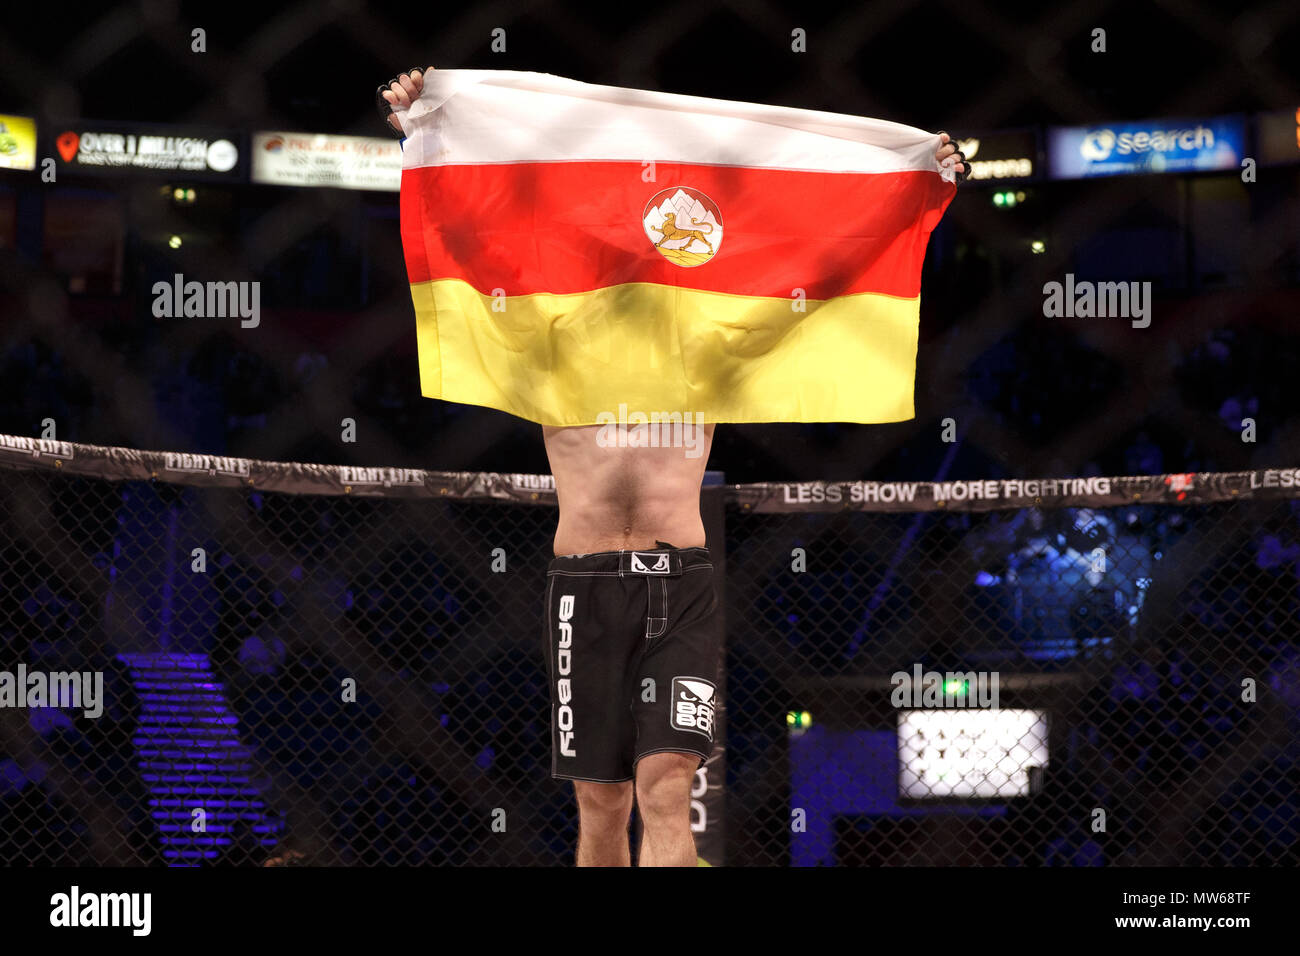 Ossetian MMA fighter Batraz Agnaev holds up the flag of the Republic of North Ossetia-Alania (often North Ossetia) after a win at a Mixed Martial Arts event in Manchester, UK. North Ossetia-Alania is a federal subject of Russia. - Stock Image